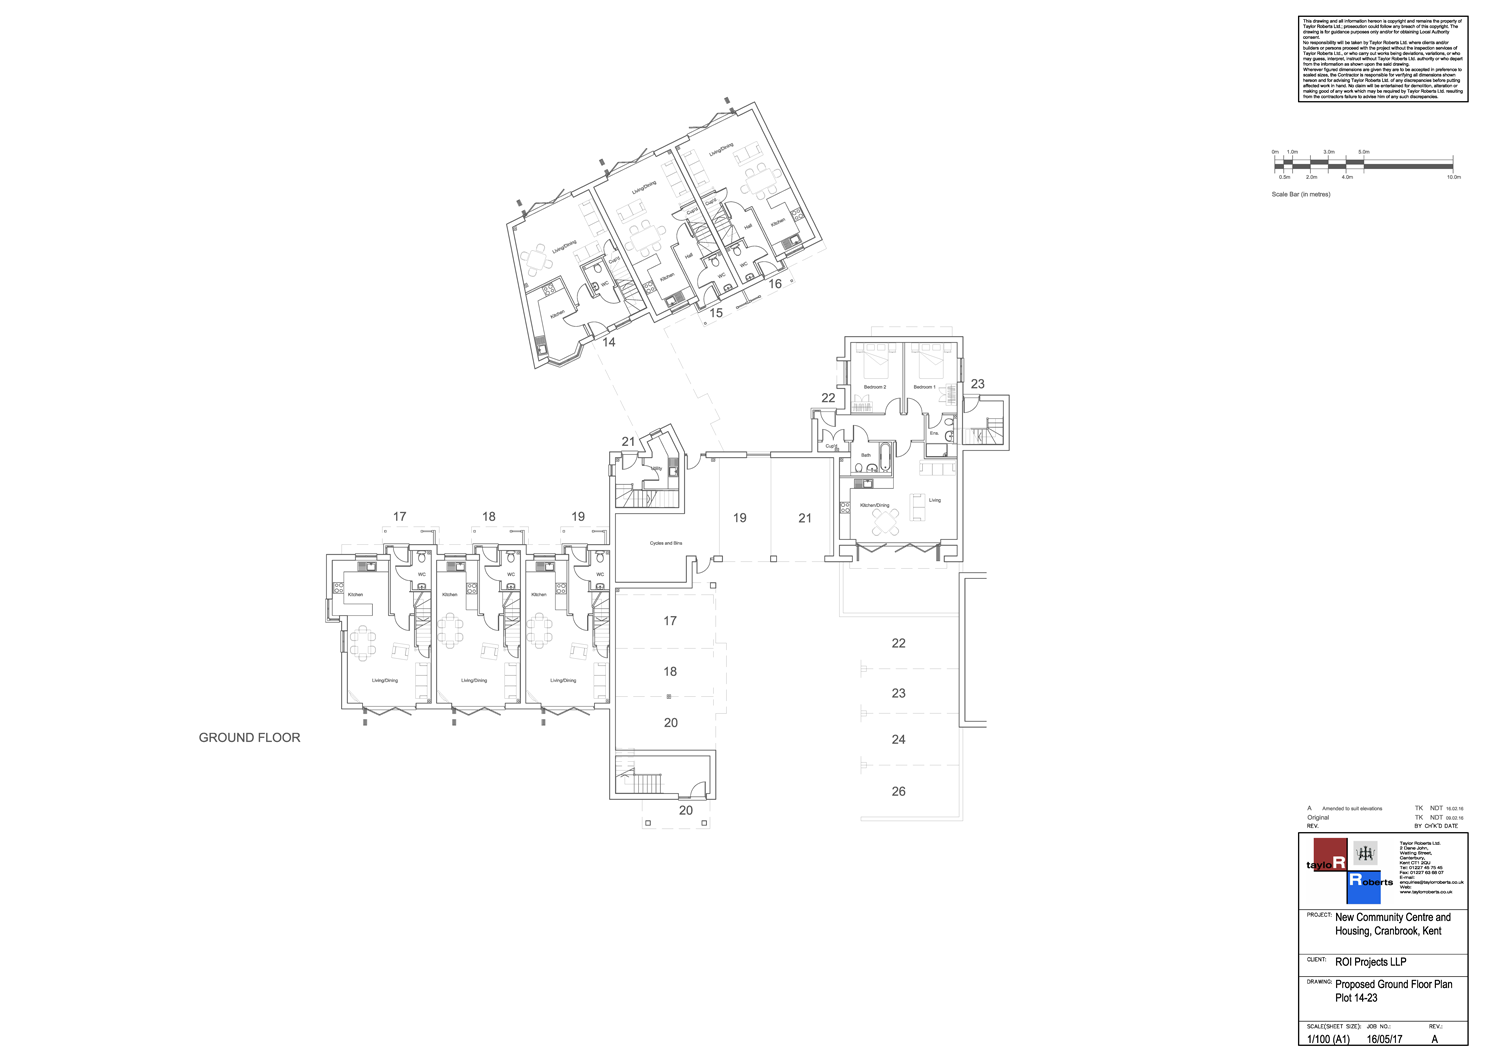 16-05-17-A---Proposed-Ground-Floor-Plan-(Plot-14-23).png